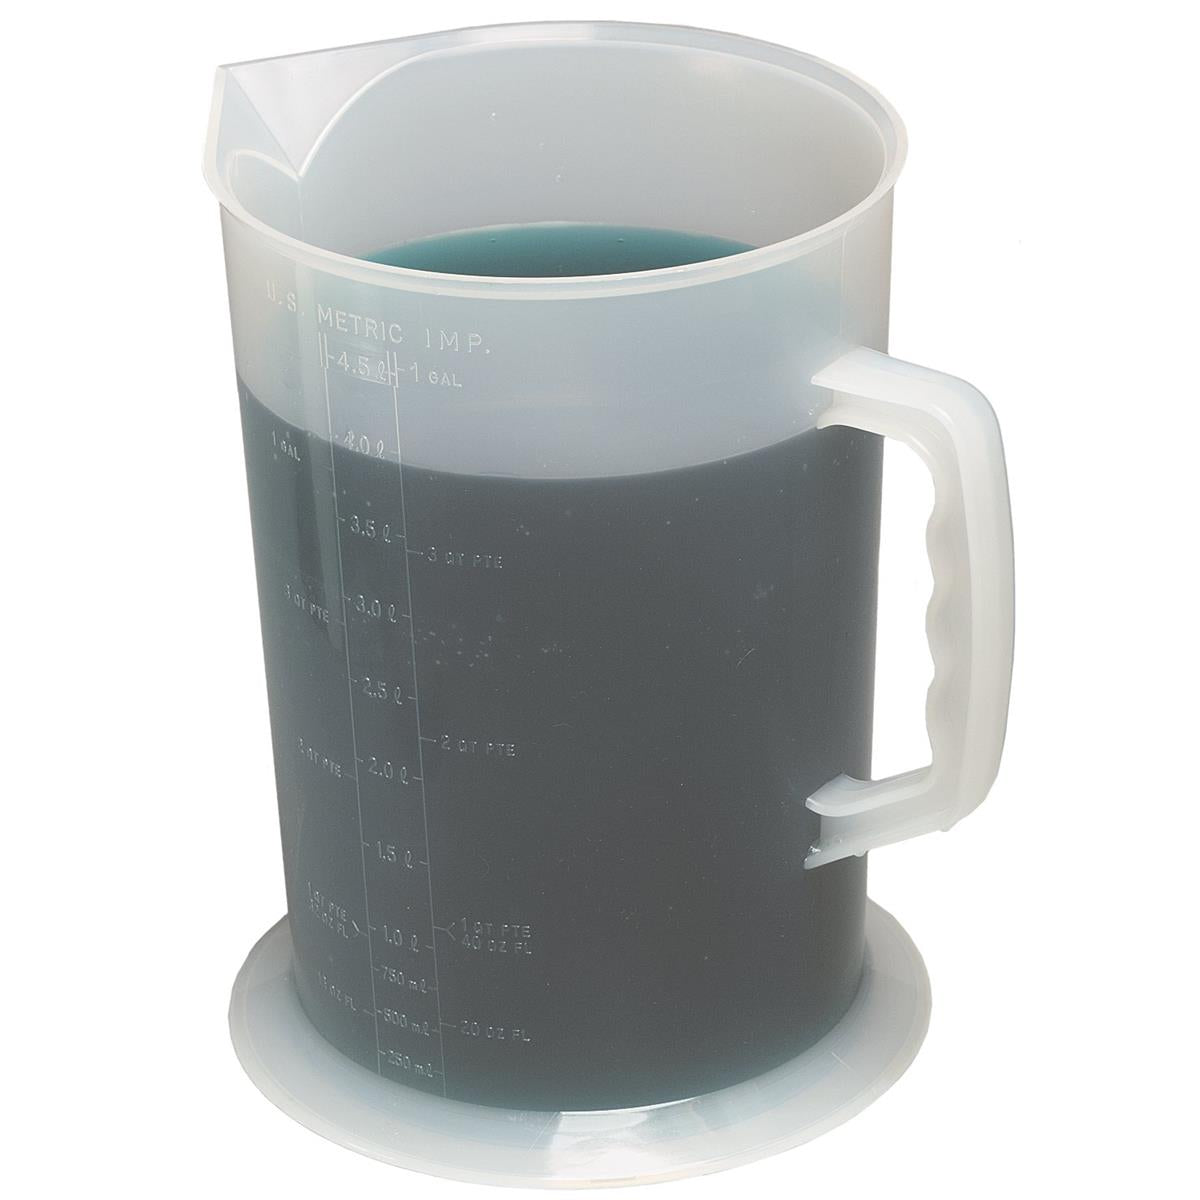 FUNNEL KING 1-gal. Polypropylene Measuring Pitcher